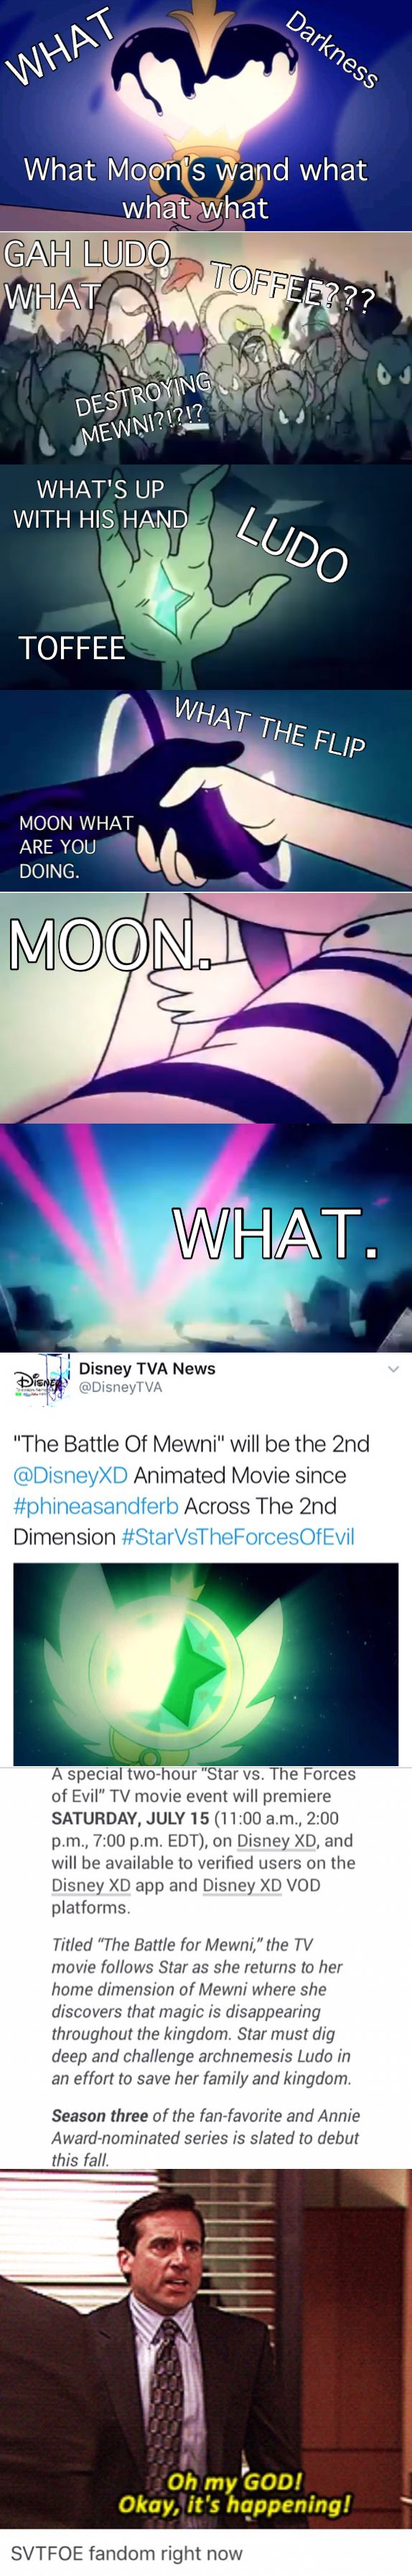 Star vs the Forces of Evil MOVIE ON JULY 15. THIS IS NO JOKE. Credit @livieblue